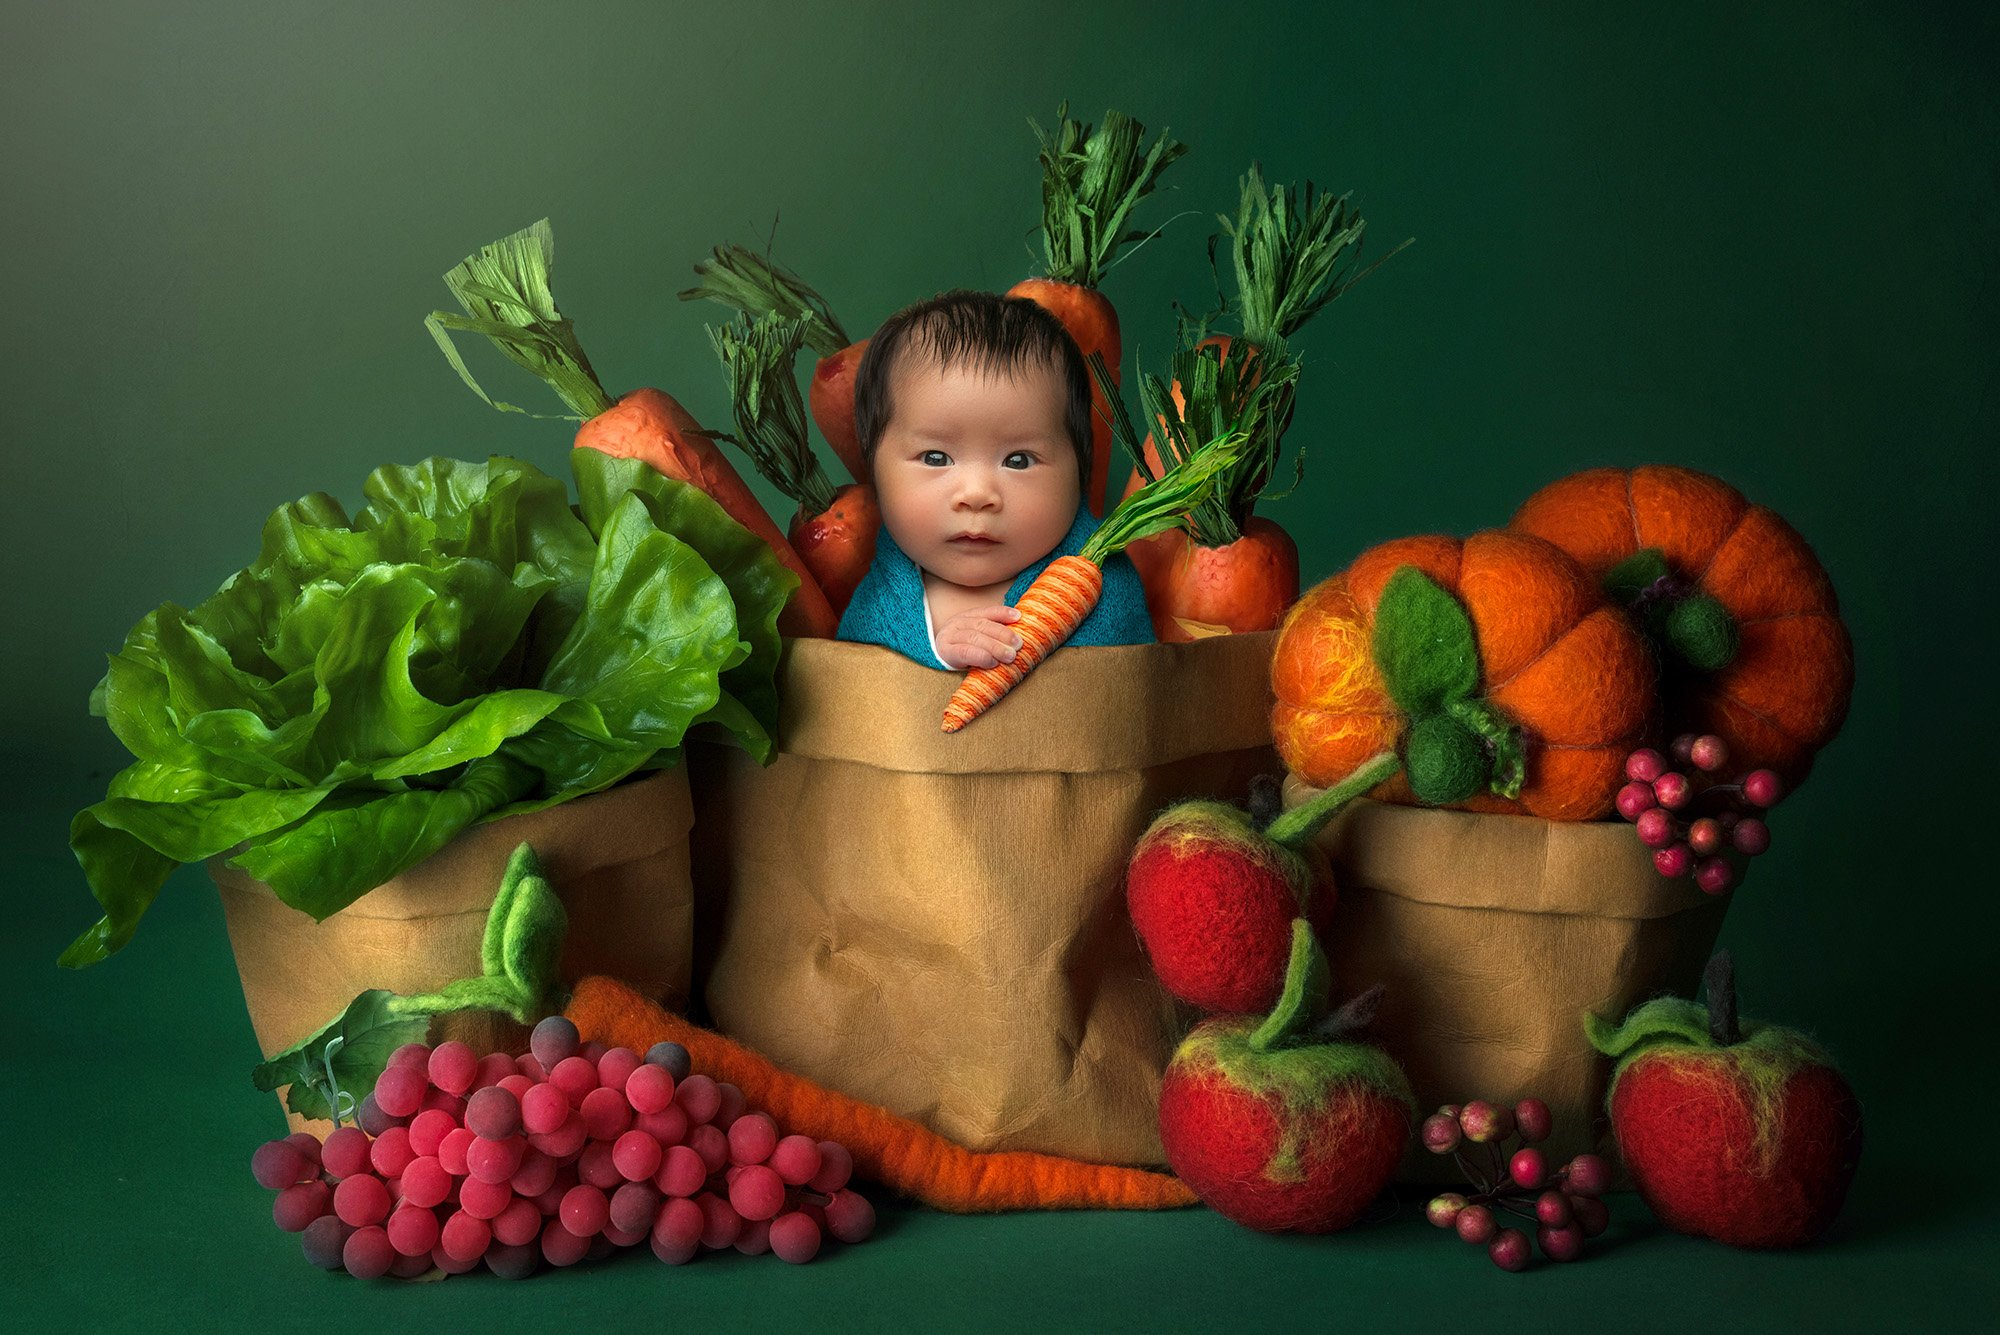 vibrant newborn photo newborn baby girl sitting in brown paper bag holding carrot surrounded by felt vegetables and fruit on a green background